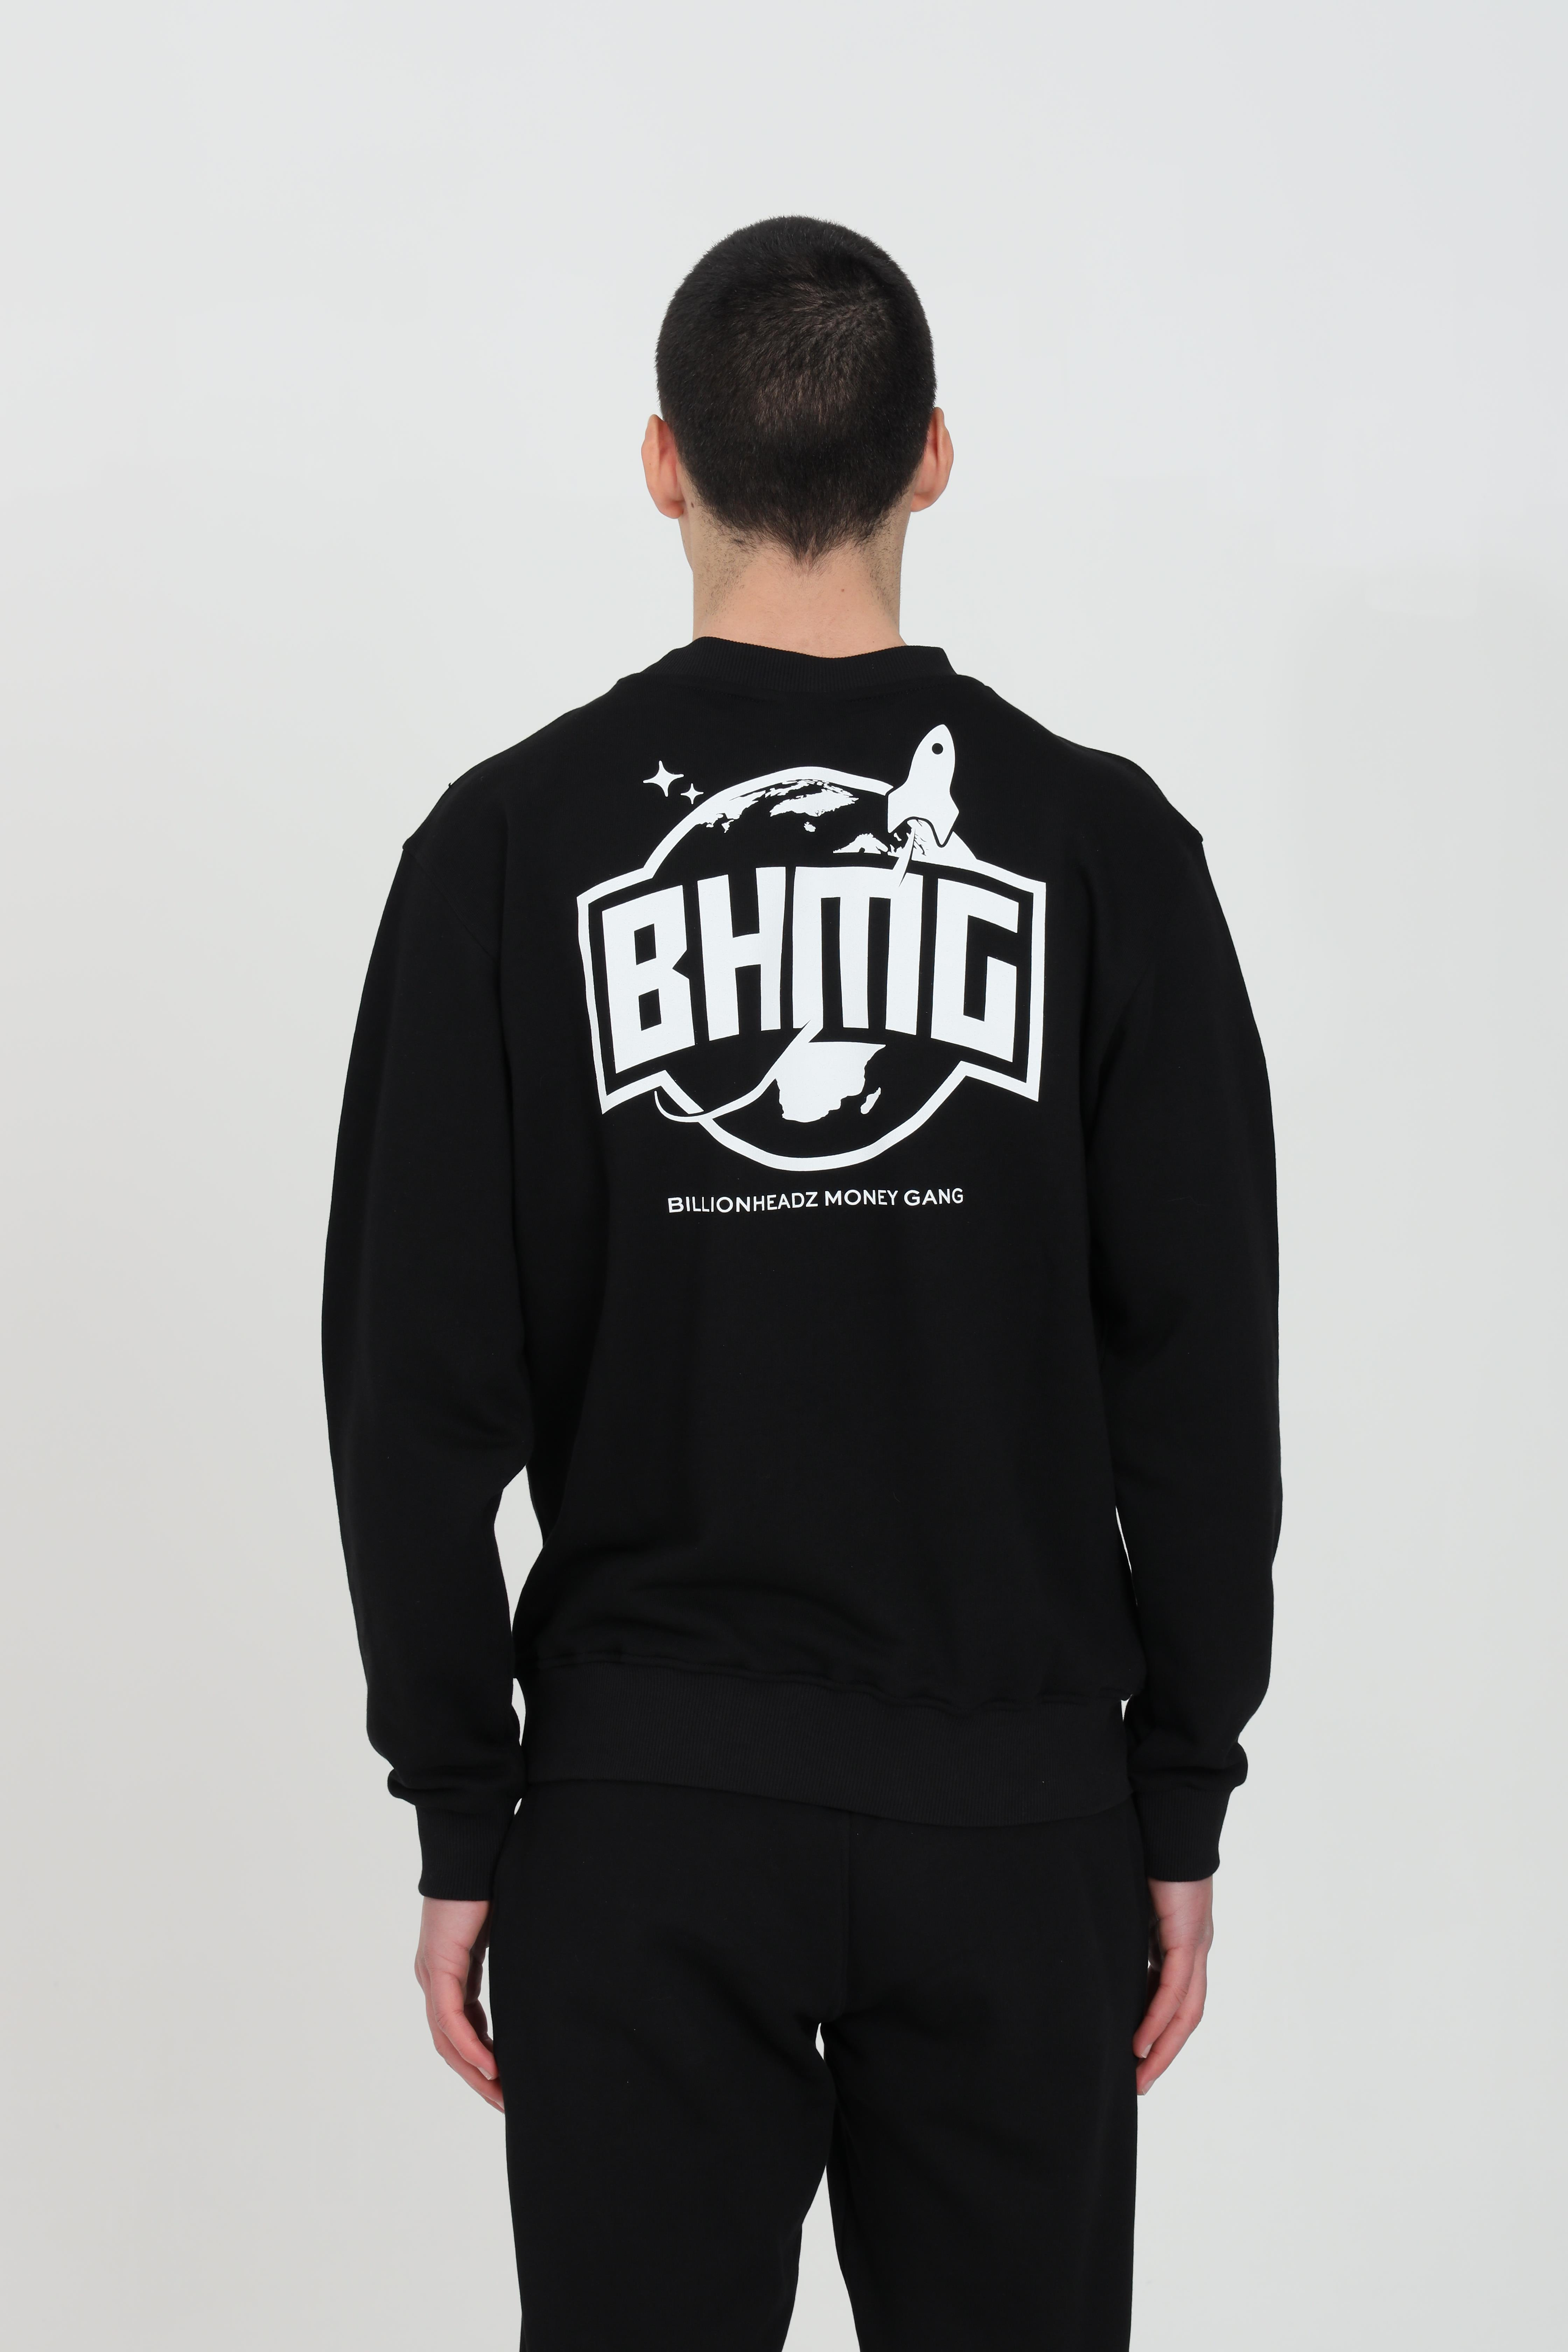 Crew neck sweatshirt with maxi print on the front BHMG | Sweatshirt | 028354110